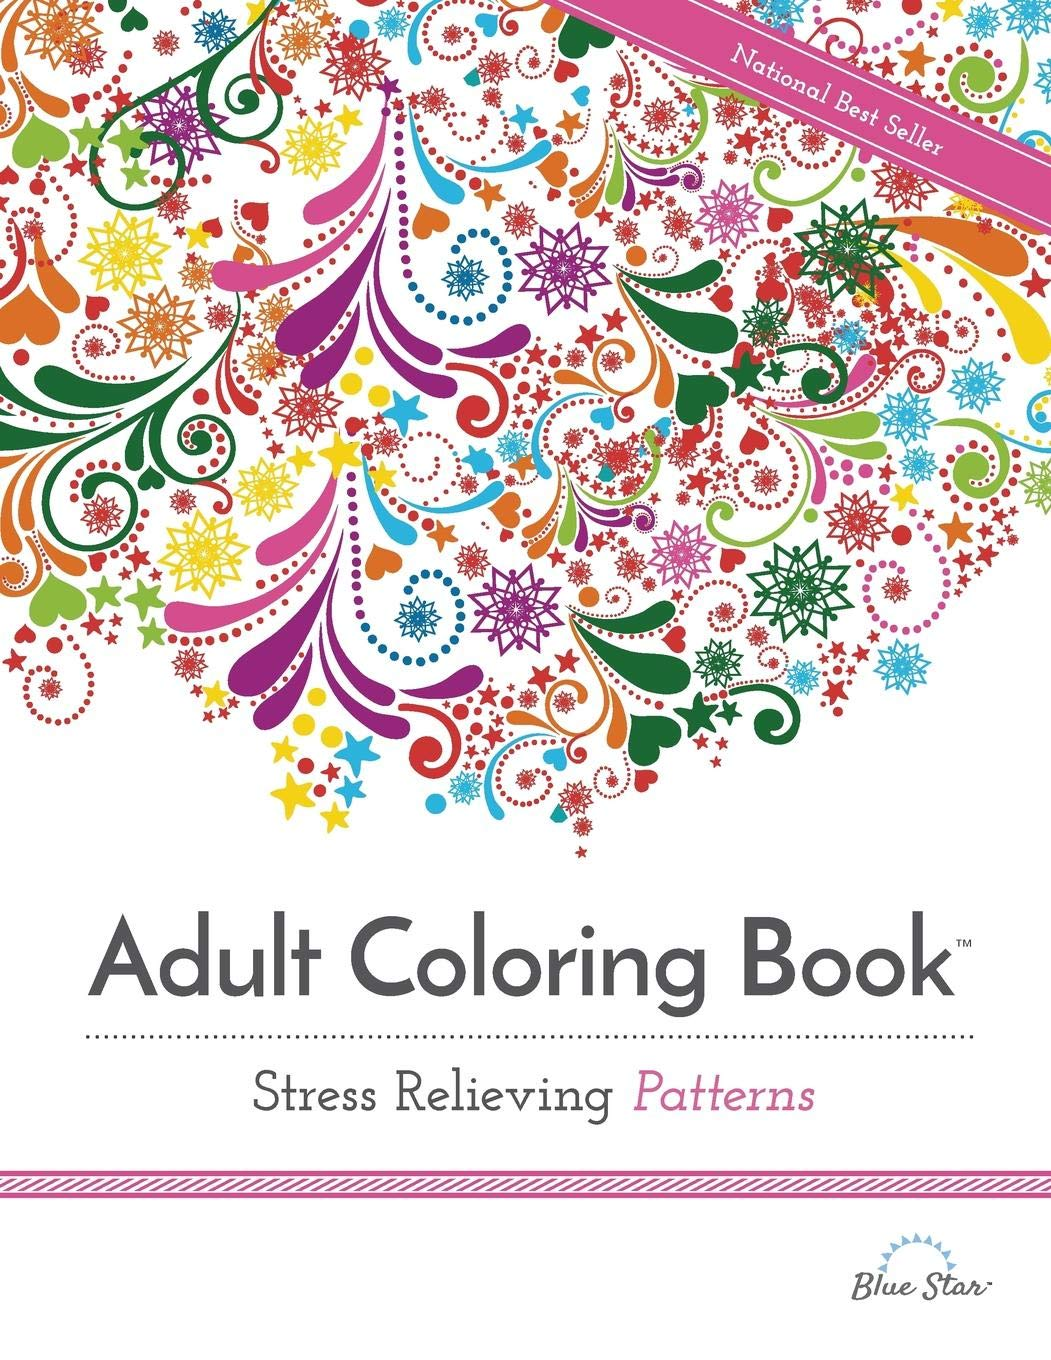 Adult coloring book stress relieving patterns adult coloring books best sellers blue star coloring 9781941325124 amazon com books